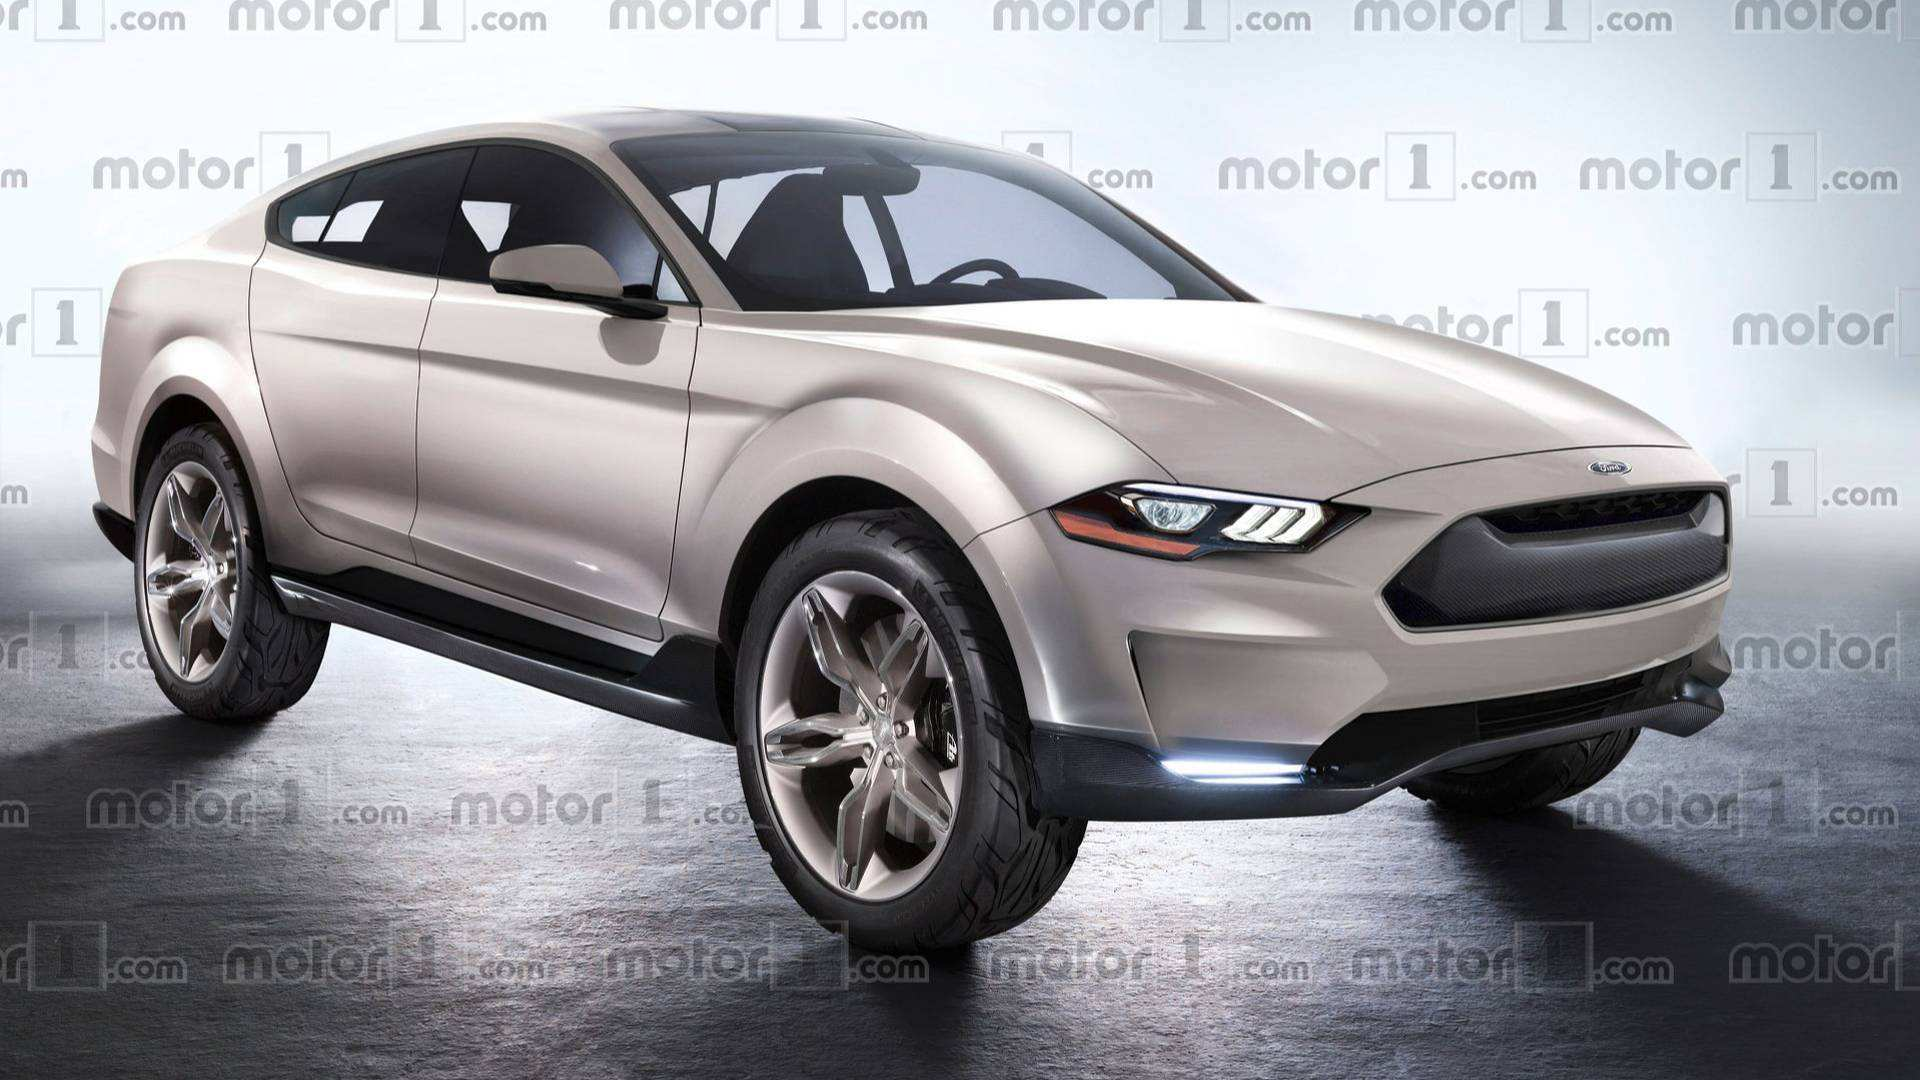 43 Great 2020 Bmw Pickup Truck Rumors for 2020 Bmw Pickup Truck